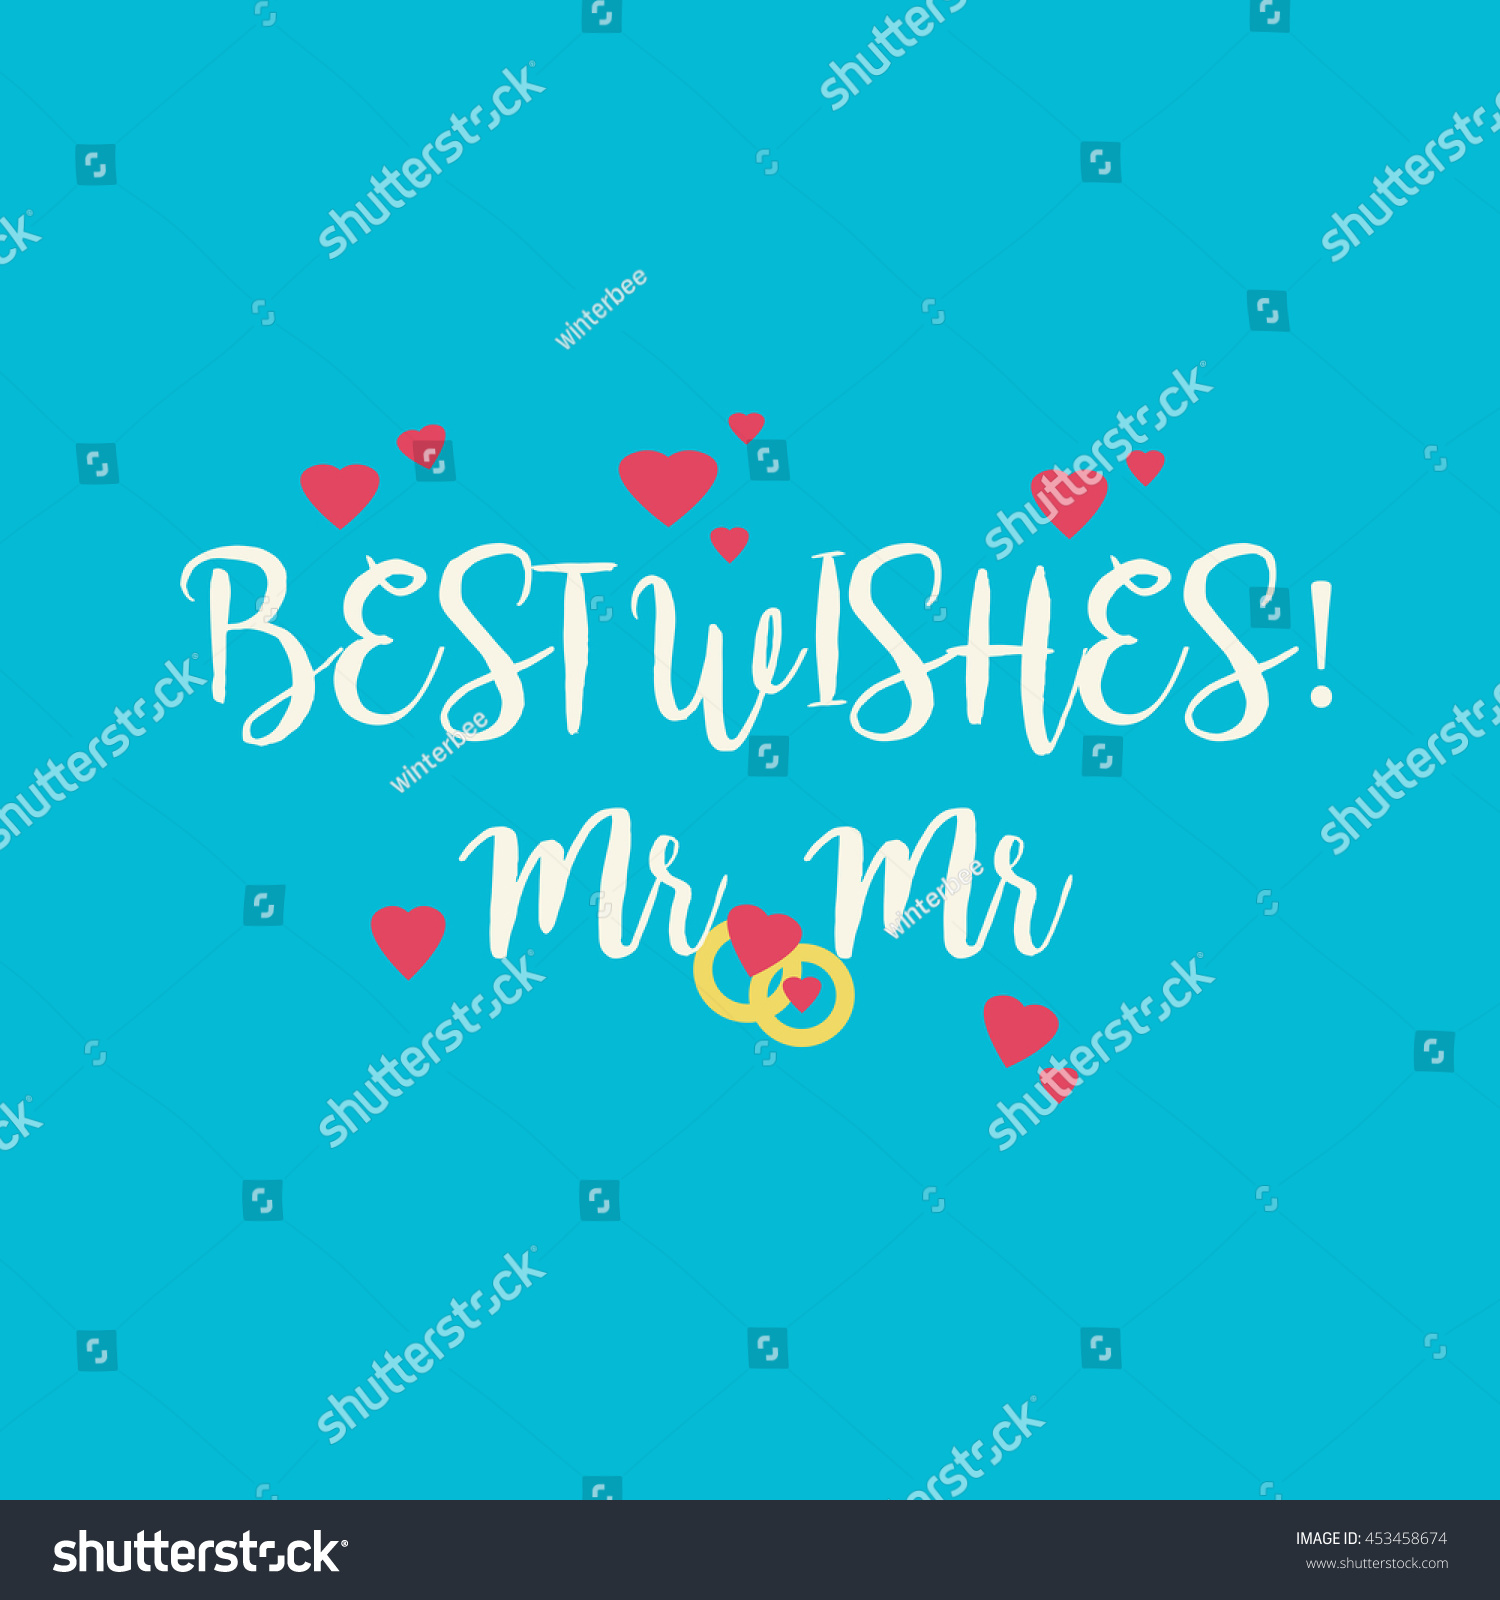 Cute Wedding Best Wishes Mr Mr Stock Illustration 453458674